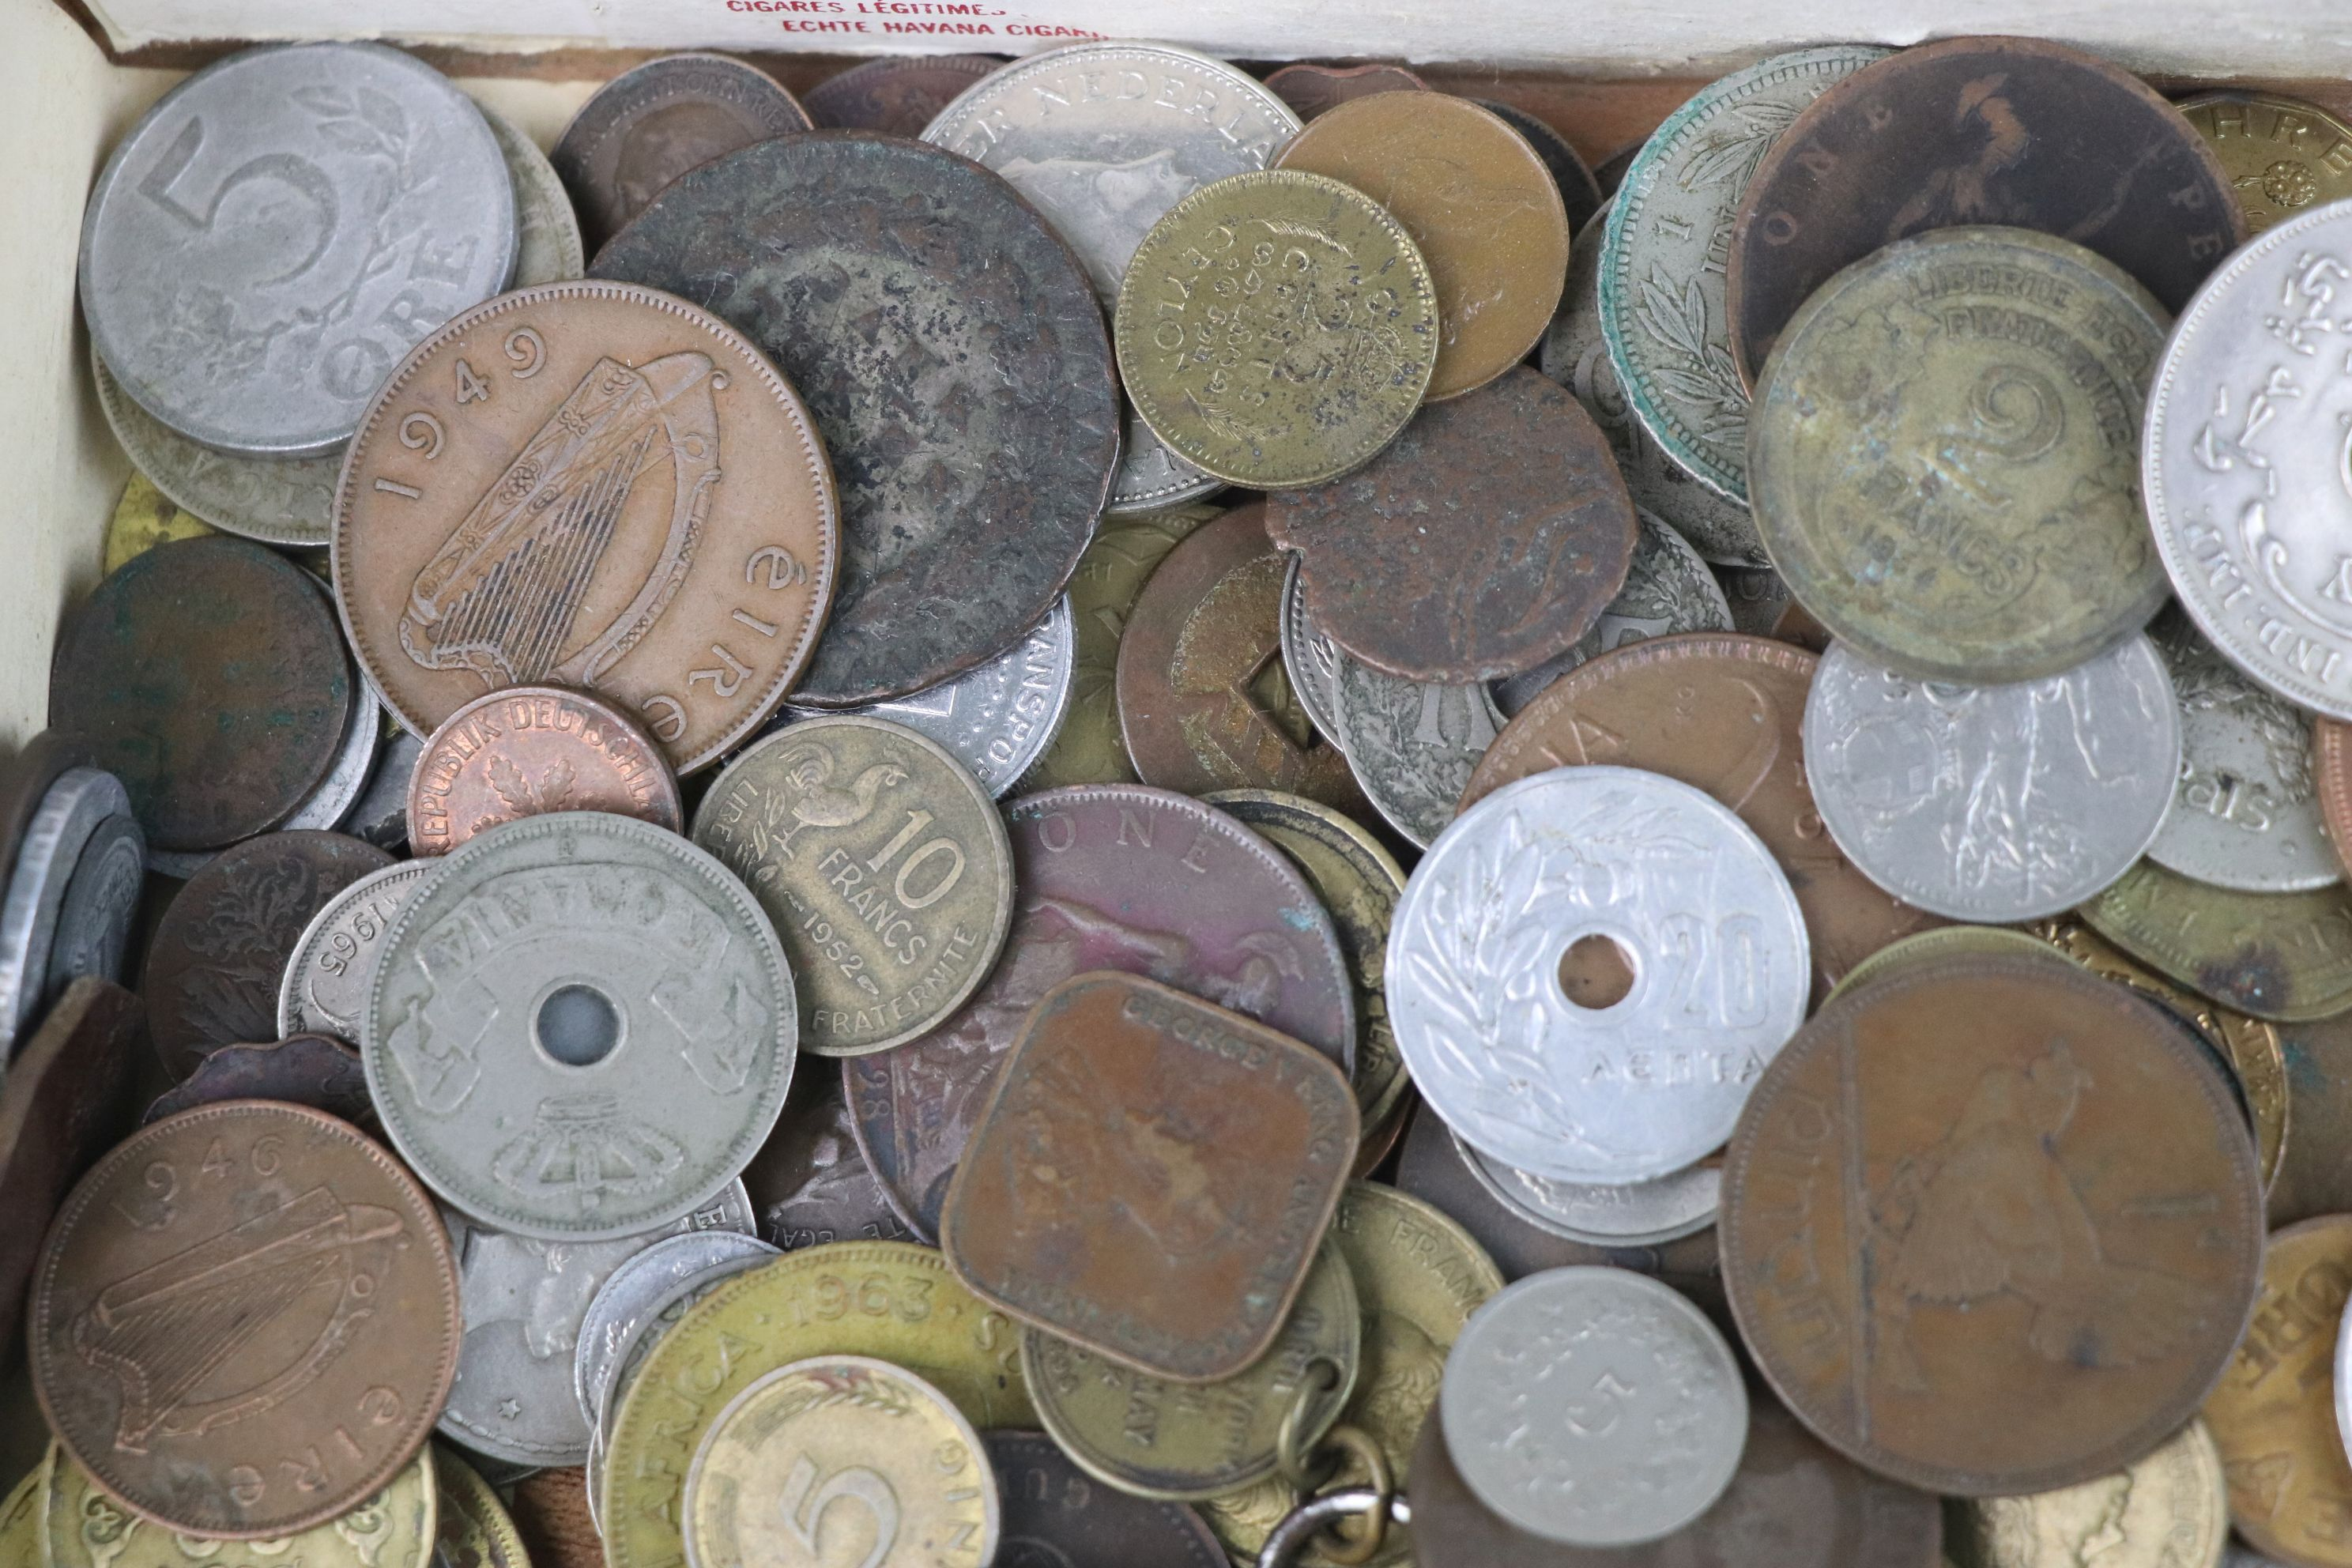 A collection of mixed 19th and 20th century British and world coins. - Image 3 of 7